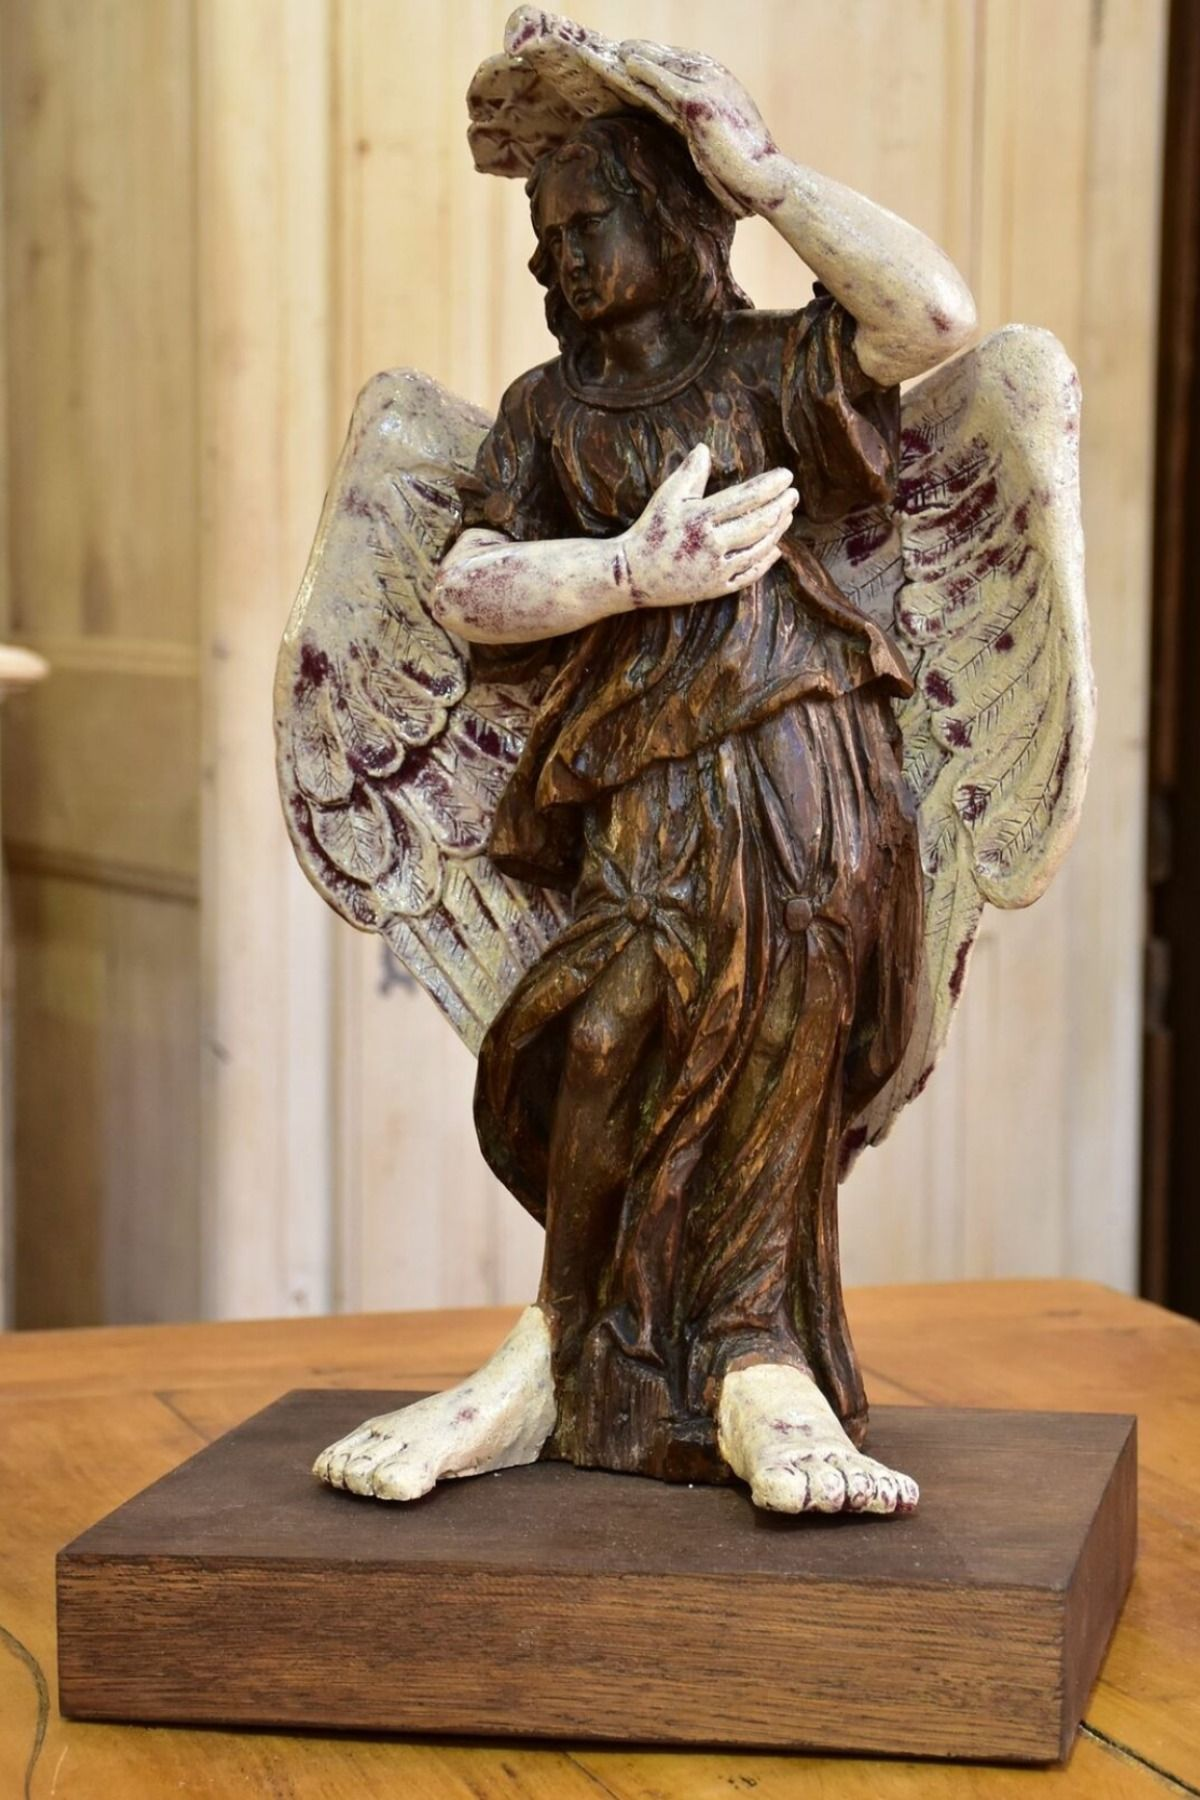 17th century Angel sculpture from a French church with a modern twist – 2/2 #frenchhomedecor #frenchcountrydecorating #homedecor #frenchantiques #frenchantiquescollection #livingroomdecor #homeaccents #antiquescollections #19thcentury #vintagedecor #antiquedecorideas #livingroomdecor